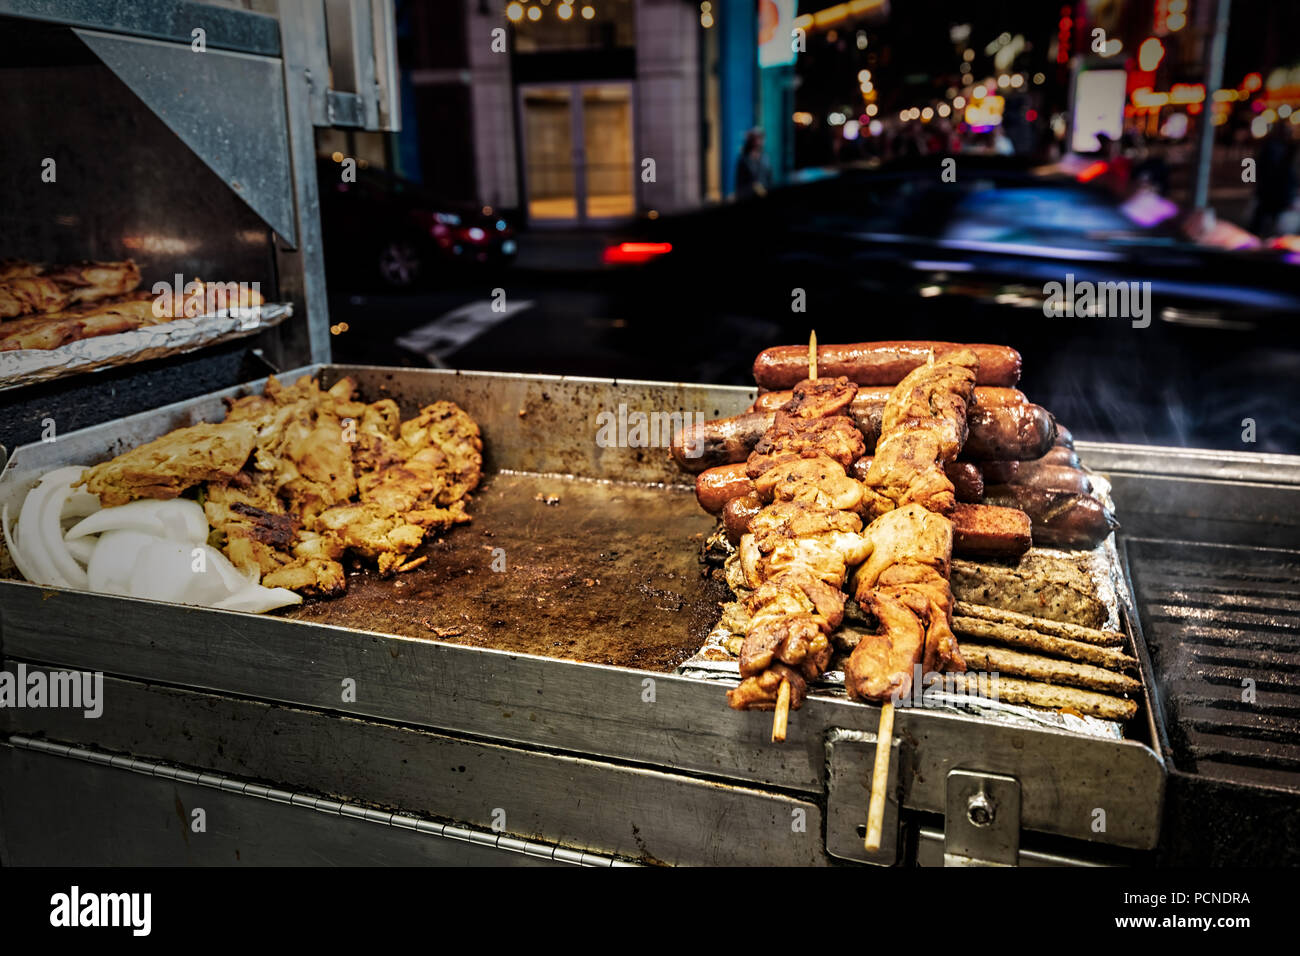 A grill at a food stand in New York City with chicken, sausages and kebabs on skewers. - Stock Image